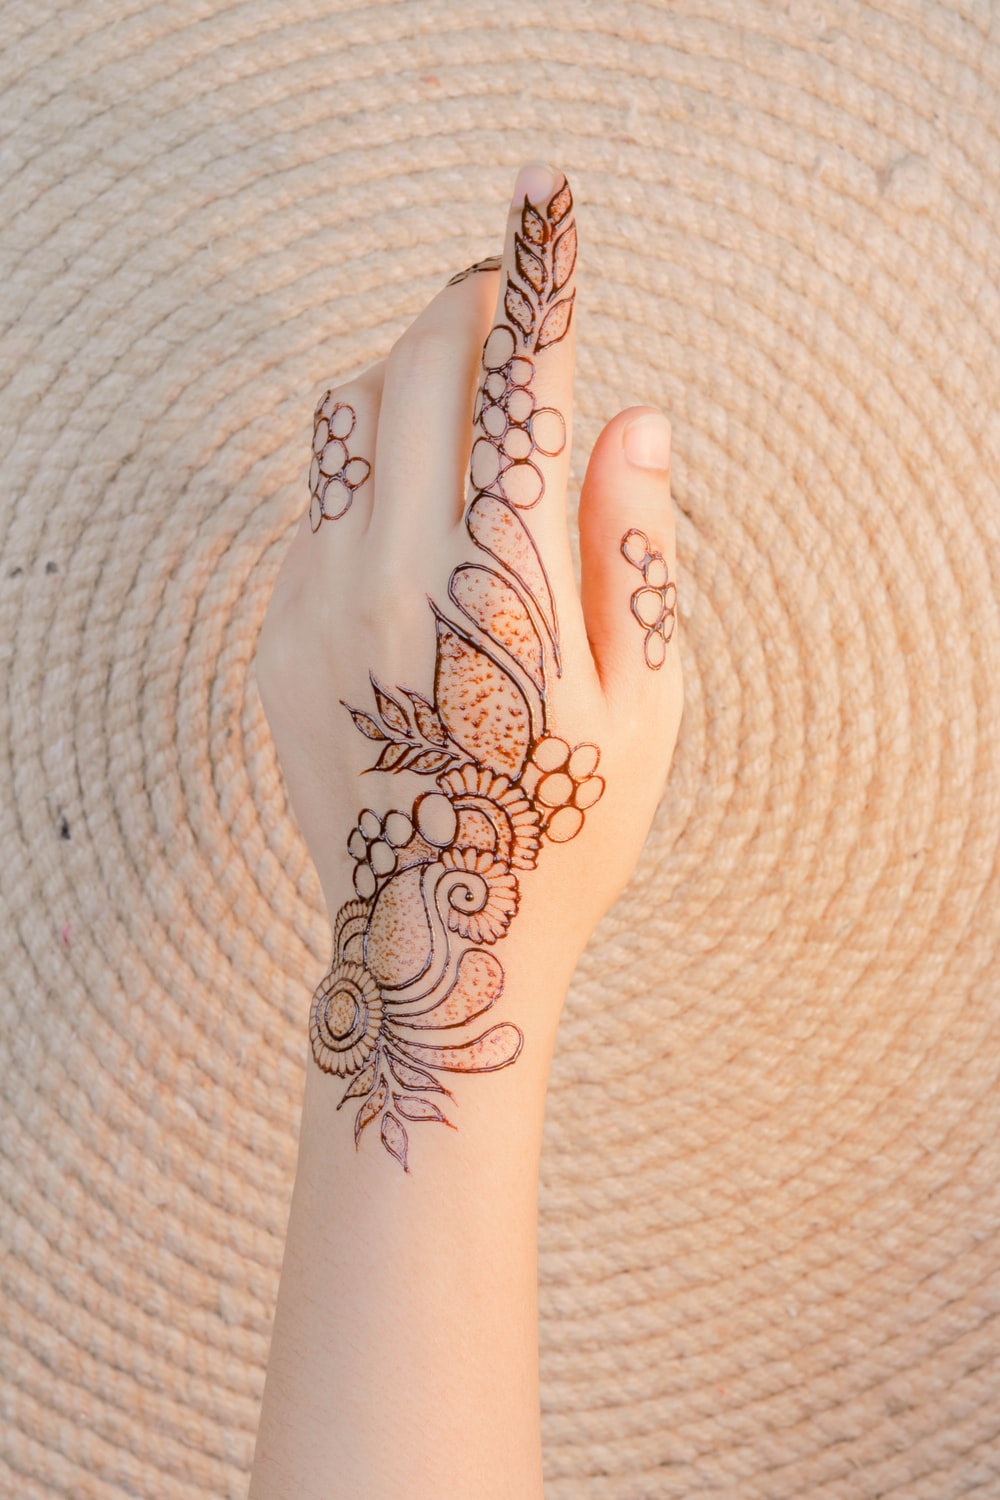 500 Henna Pictures Hd Download Free Images On Unsplash